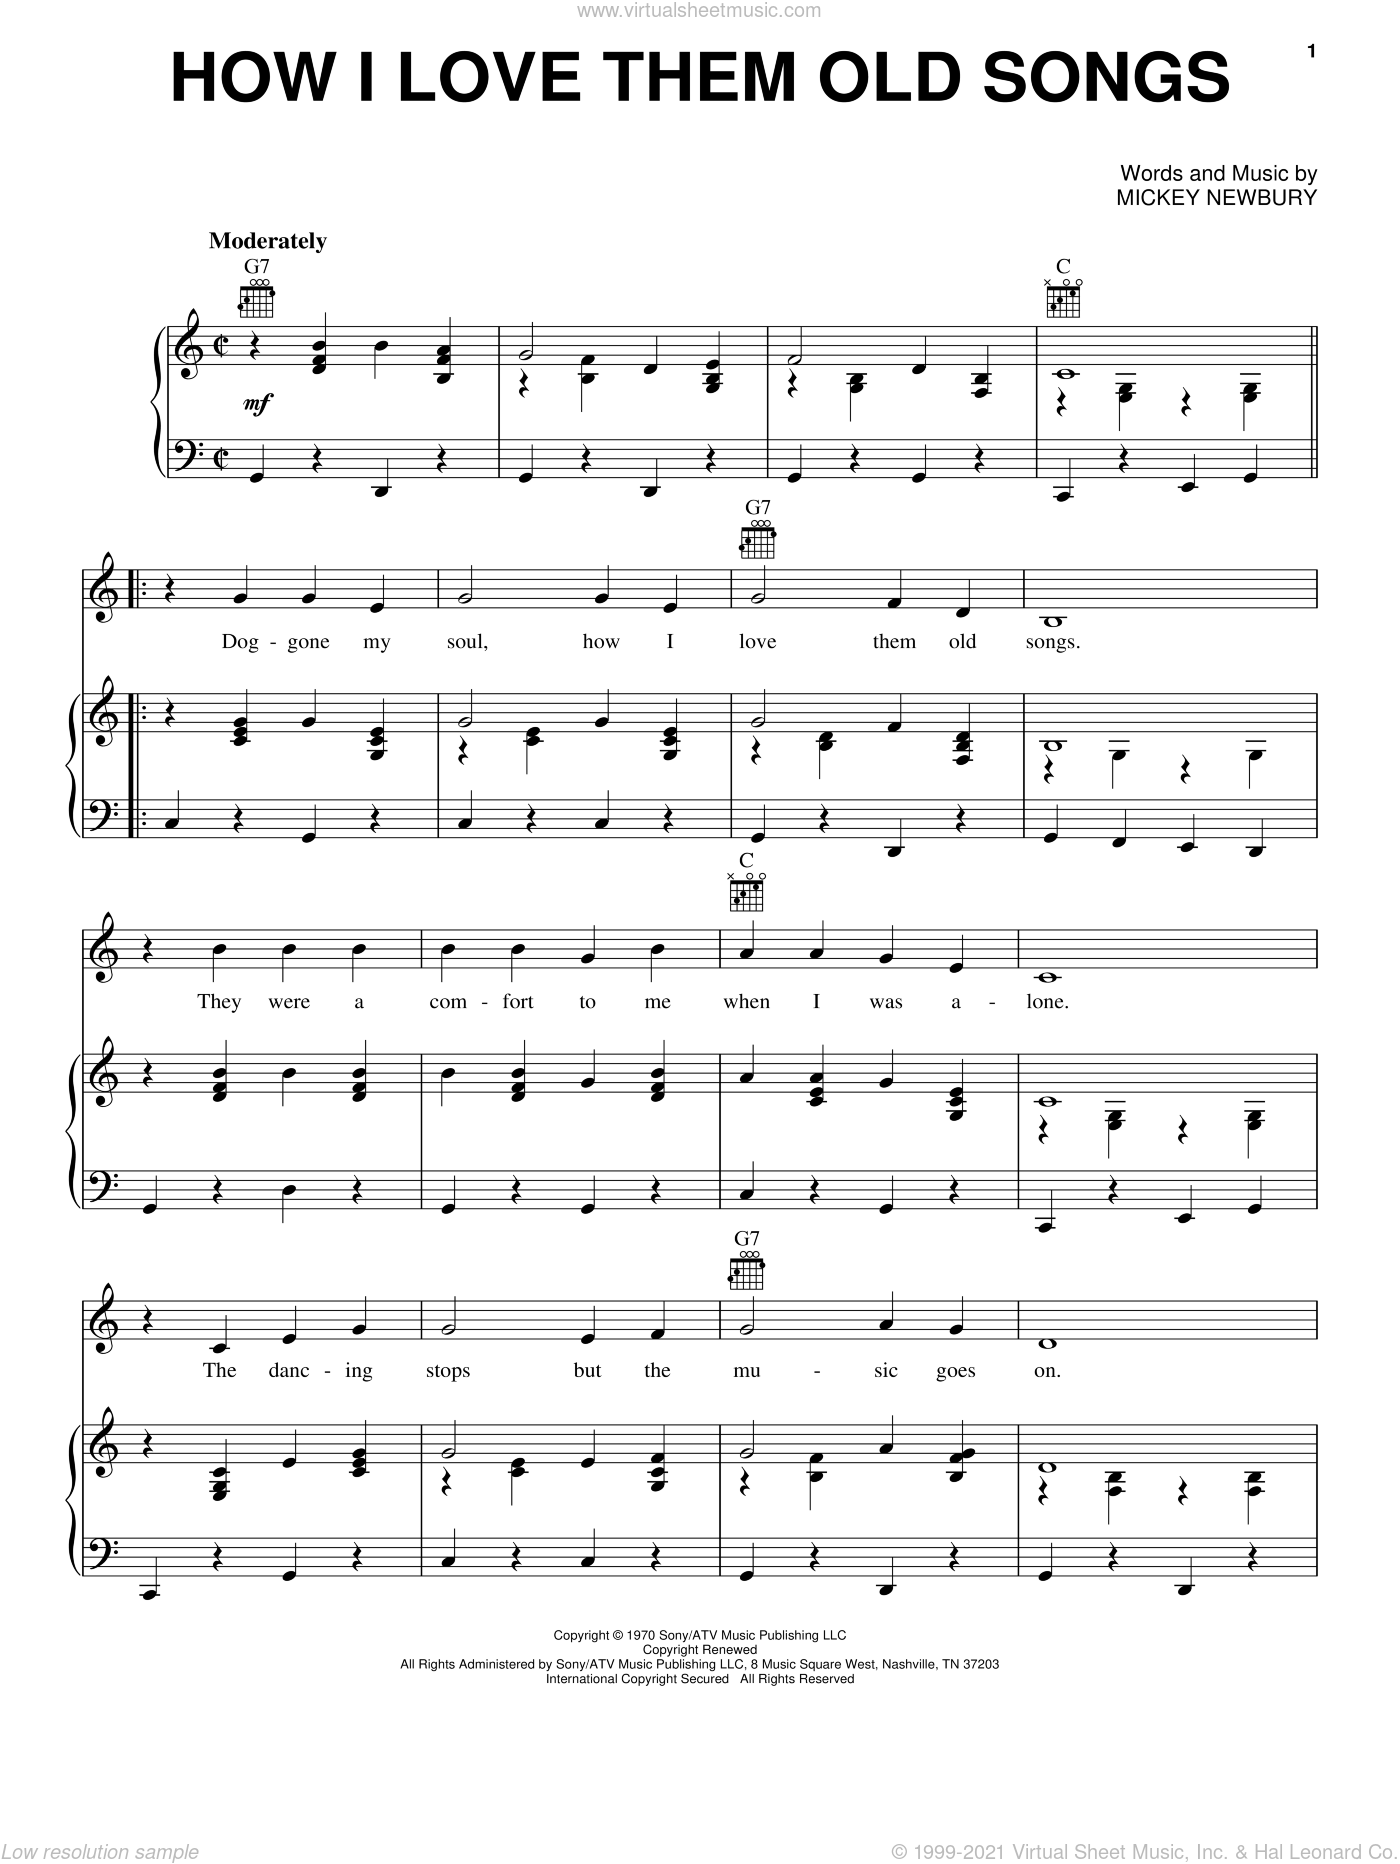 How I Love Them Old Songs sheet music for voice, piano or guitar by Mickey Newbury